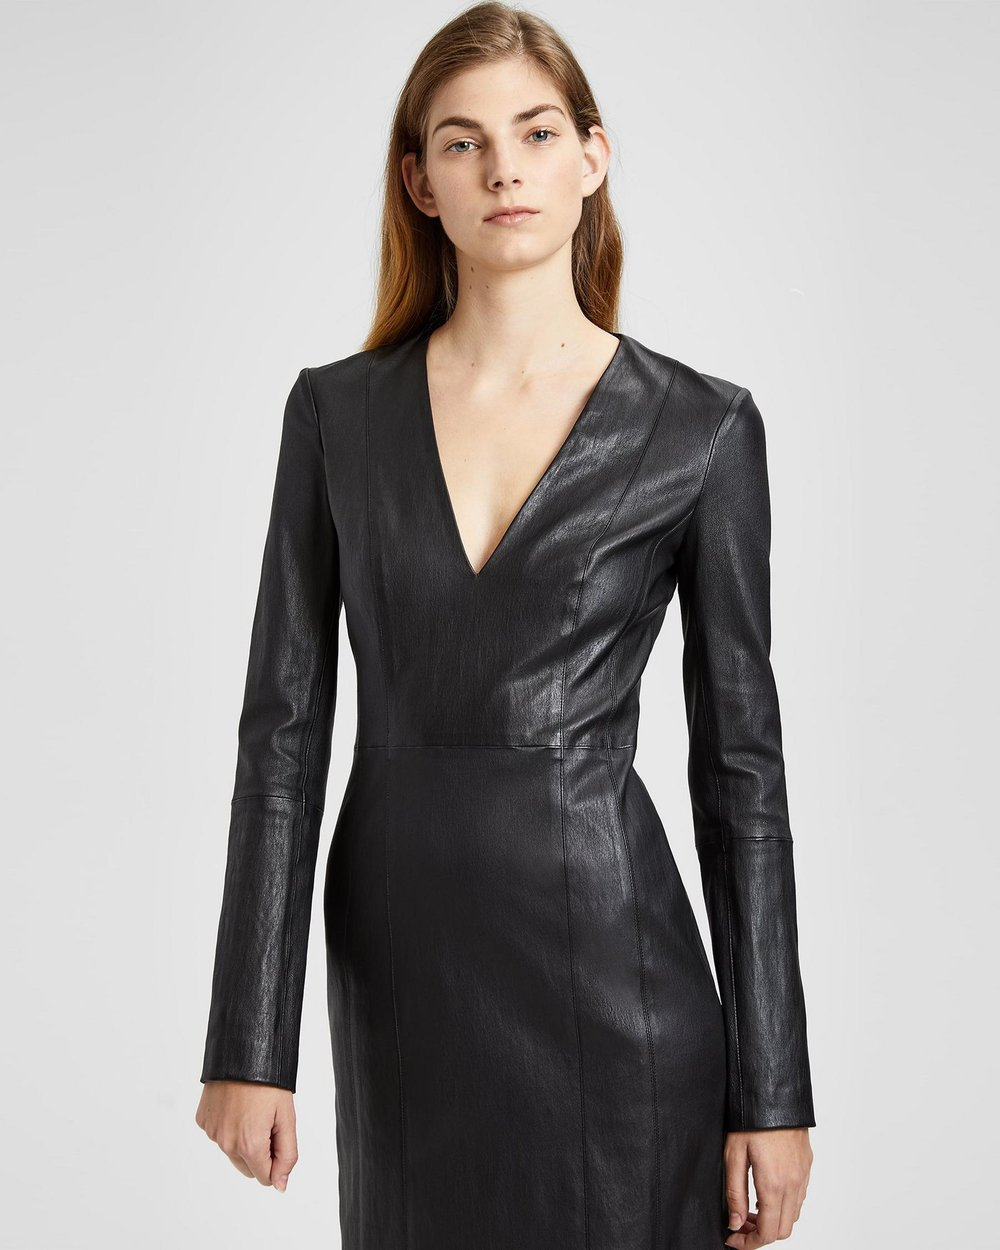 Leather V Neck Mini Dress. Theory. Was: $1,095. Now: $657.